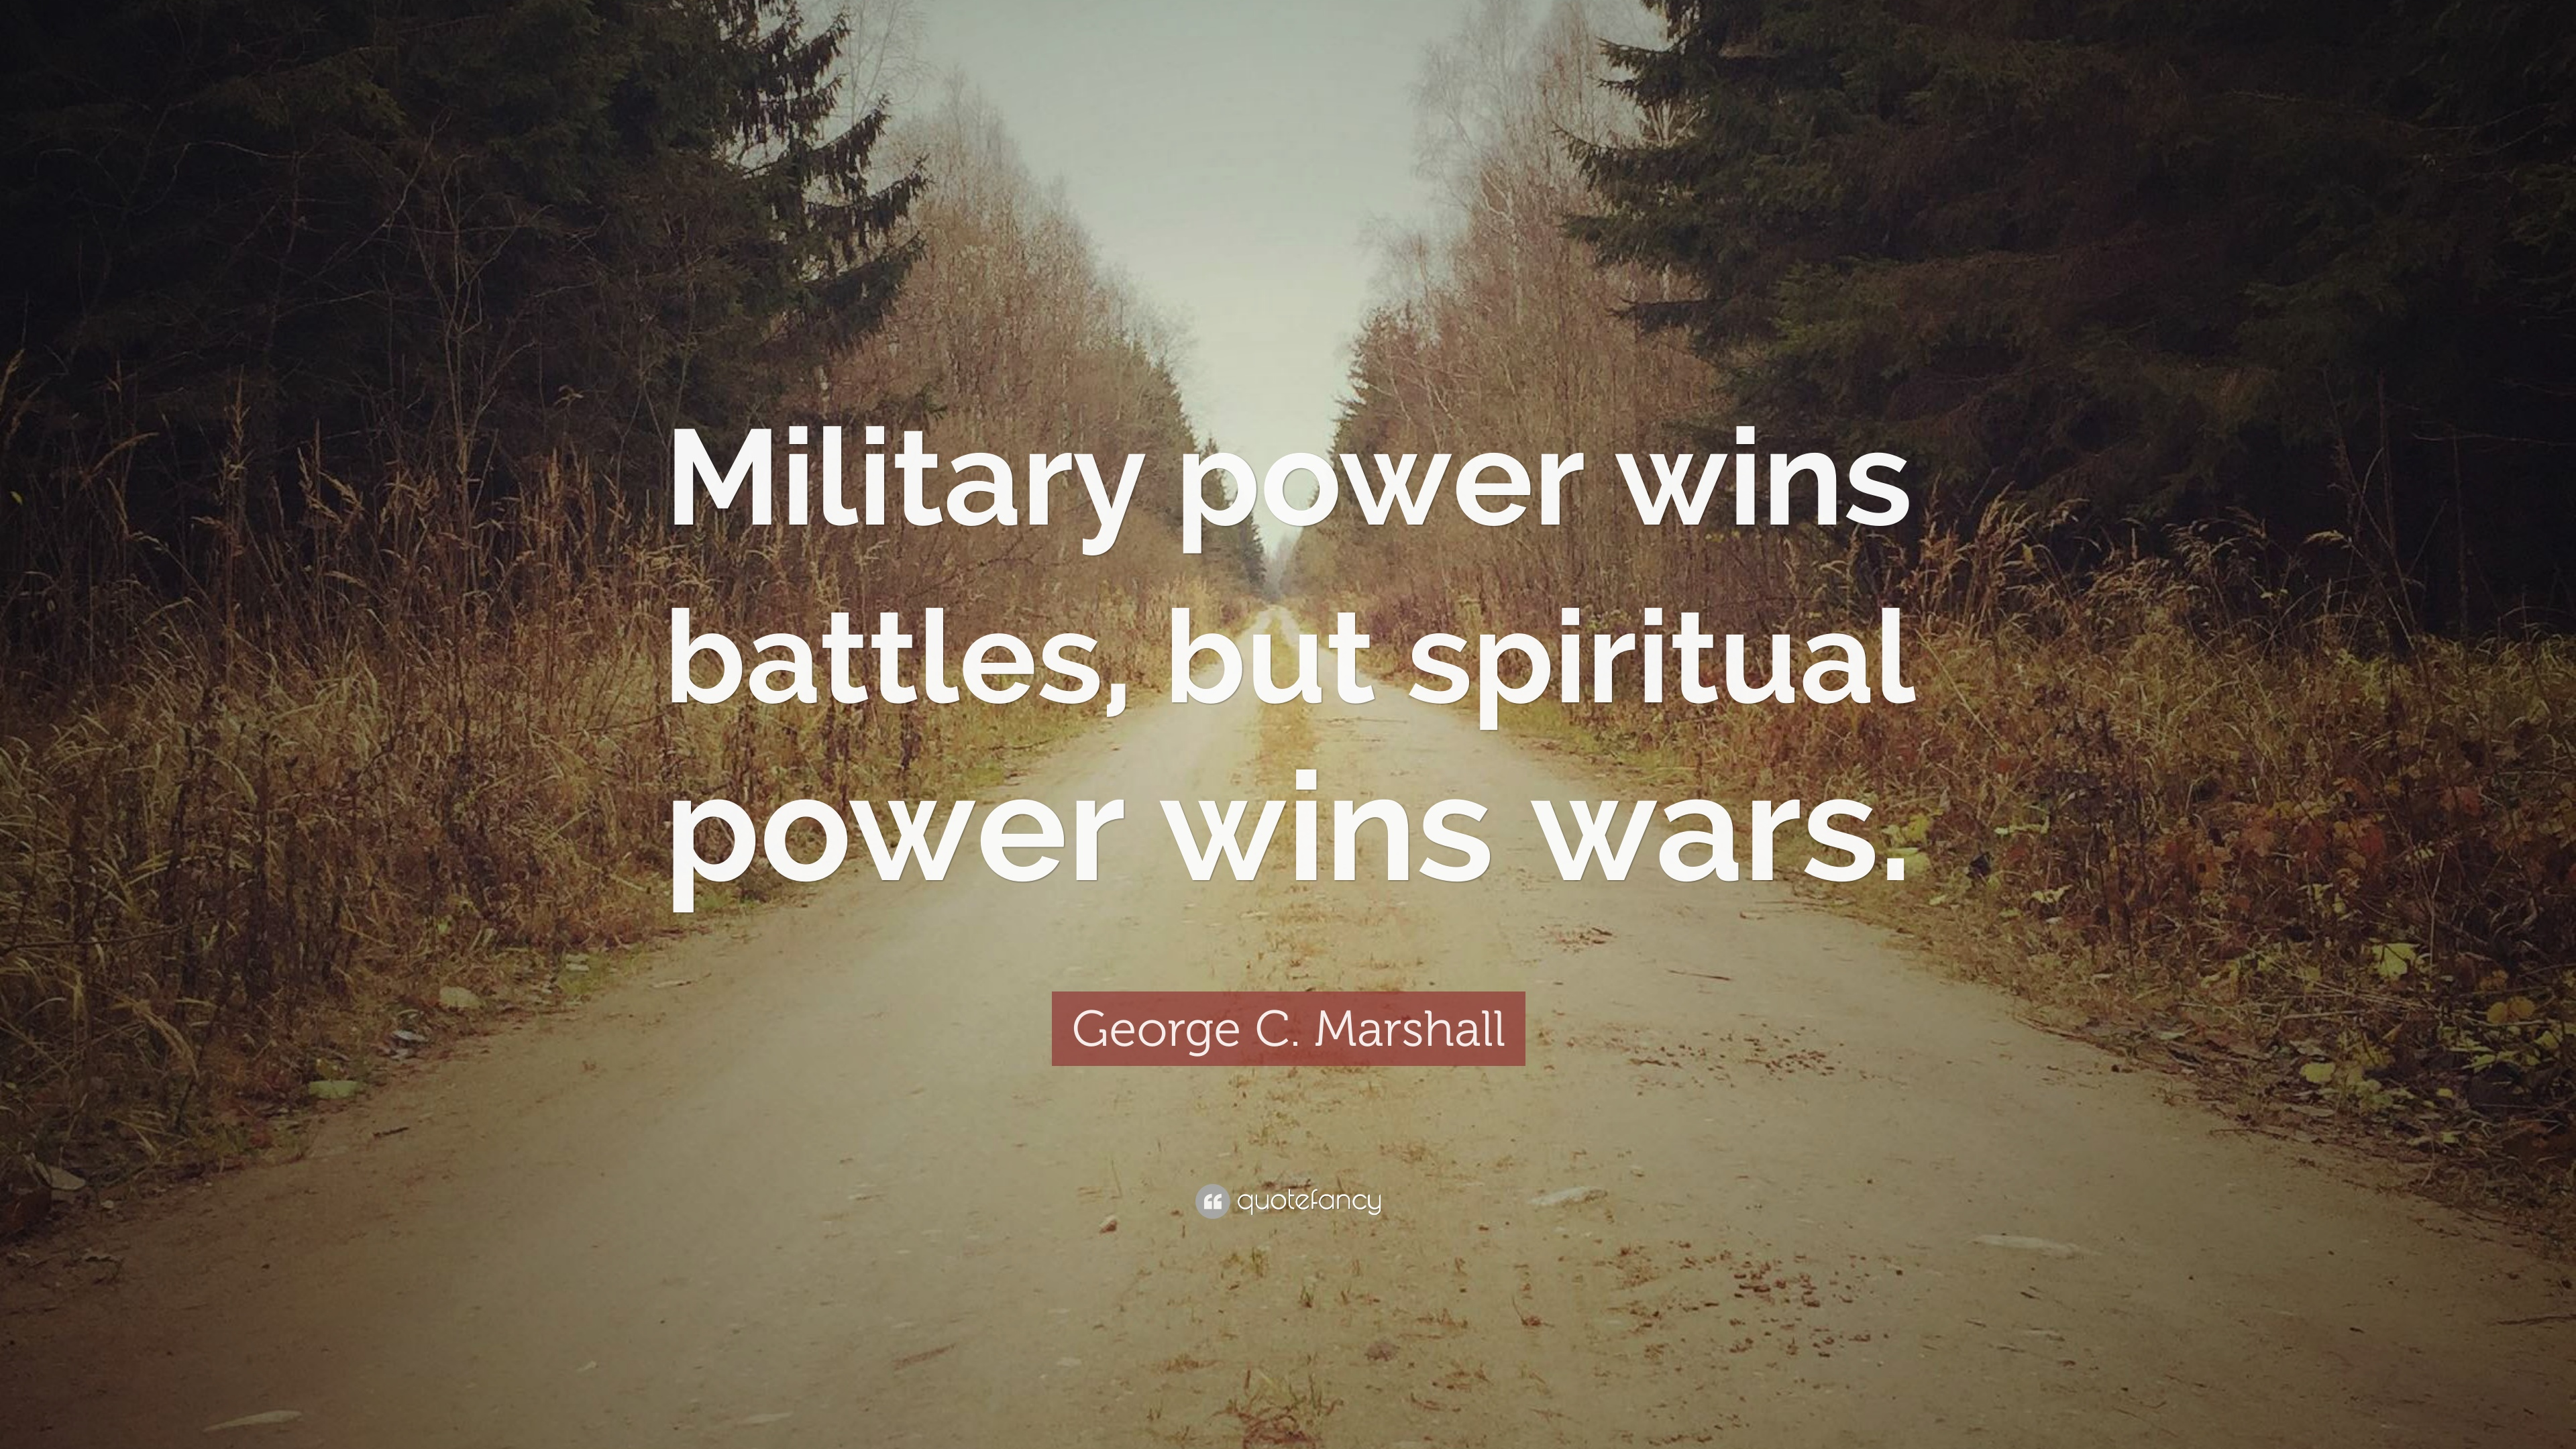 General george c marshall quotes - George C Marshall Quote Military Power Wins Battles But Spiritual Power Wins